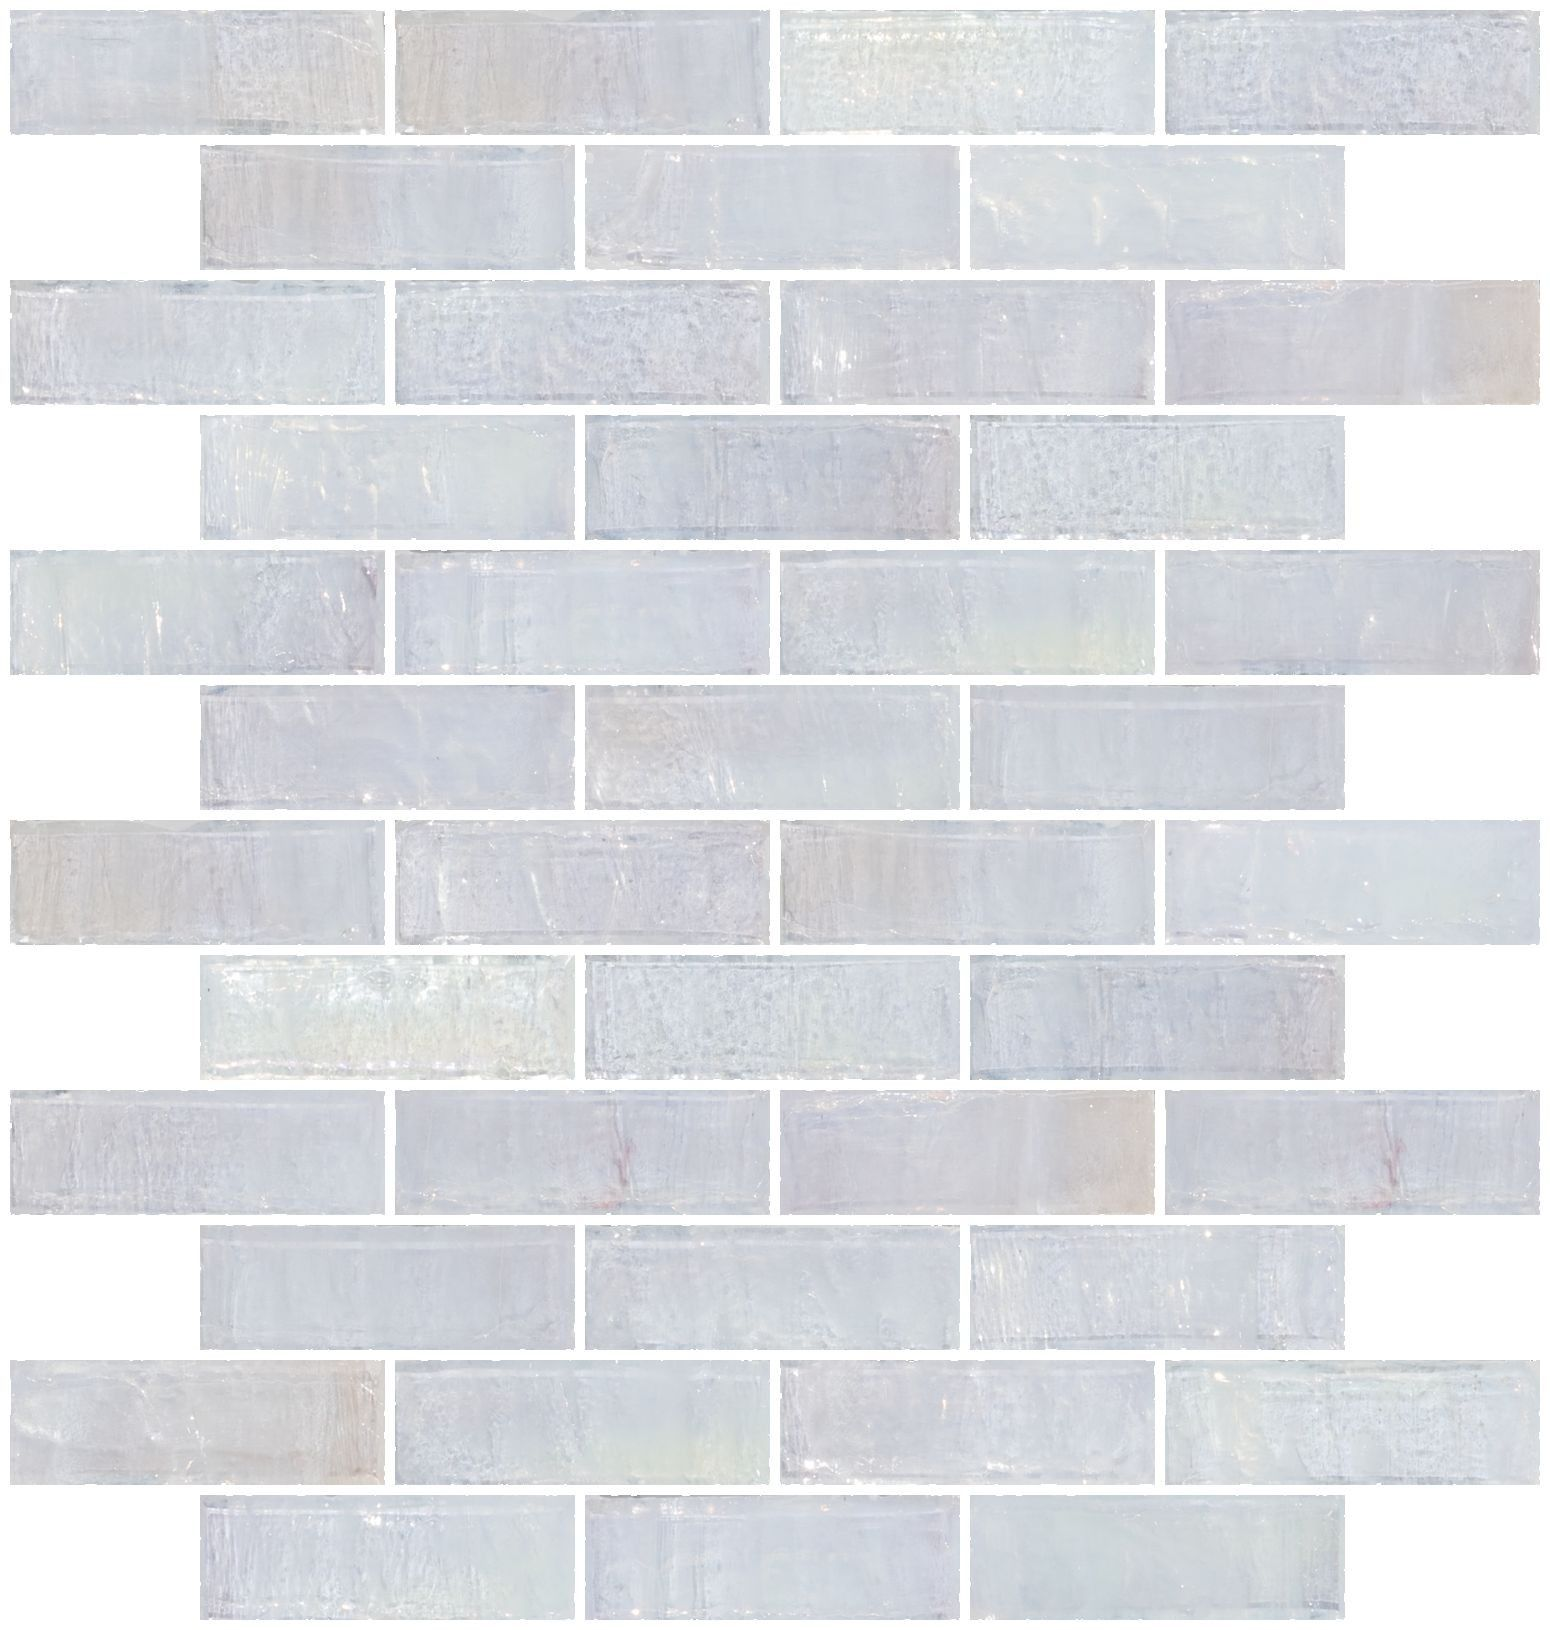 1x3 Inch Icy White Iridescent Gl Subway Tile